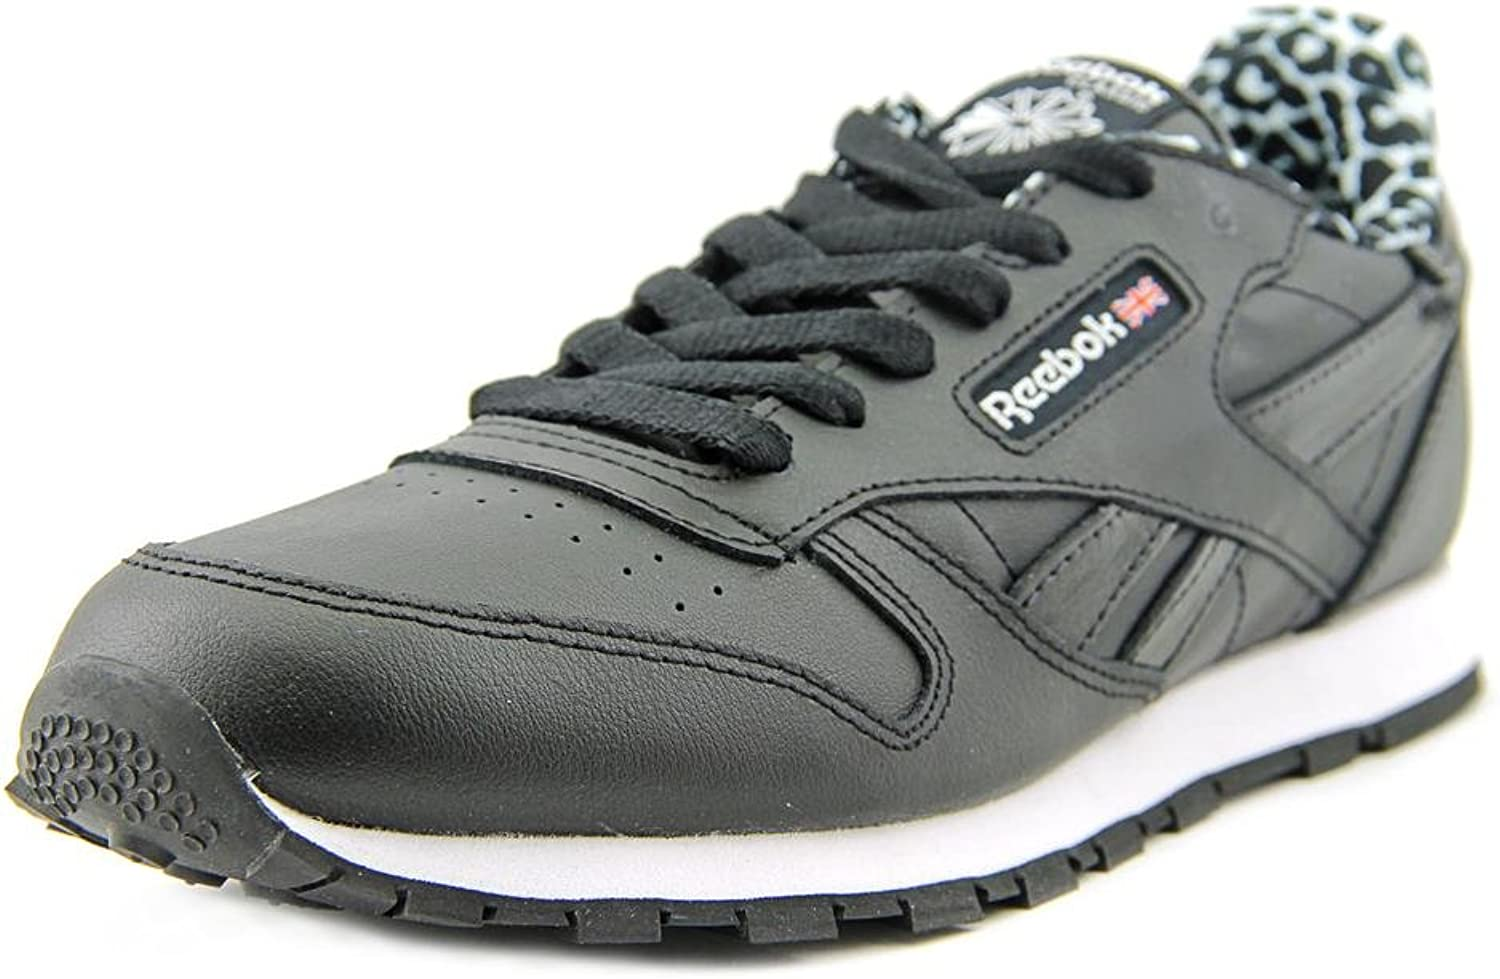 Reebok Classic Leather Animal Youth US 6 Black Sneakers